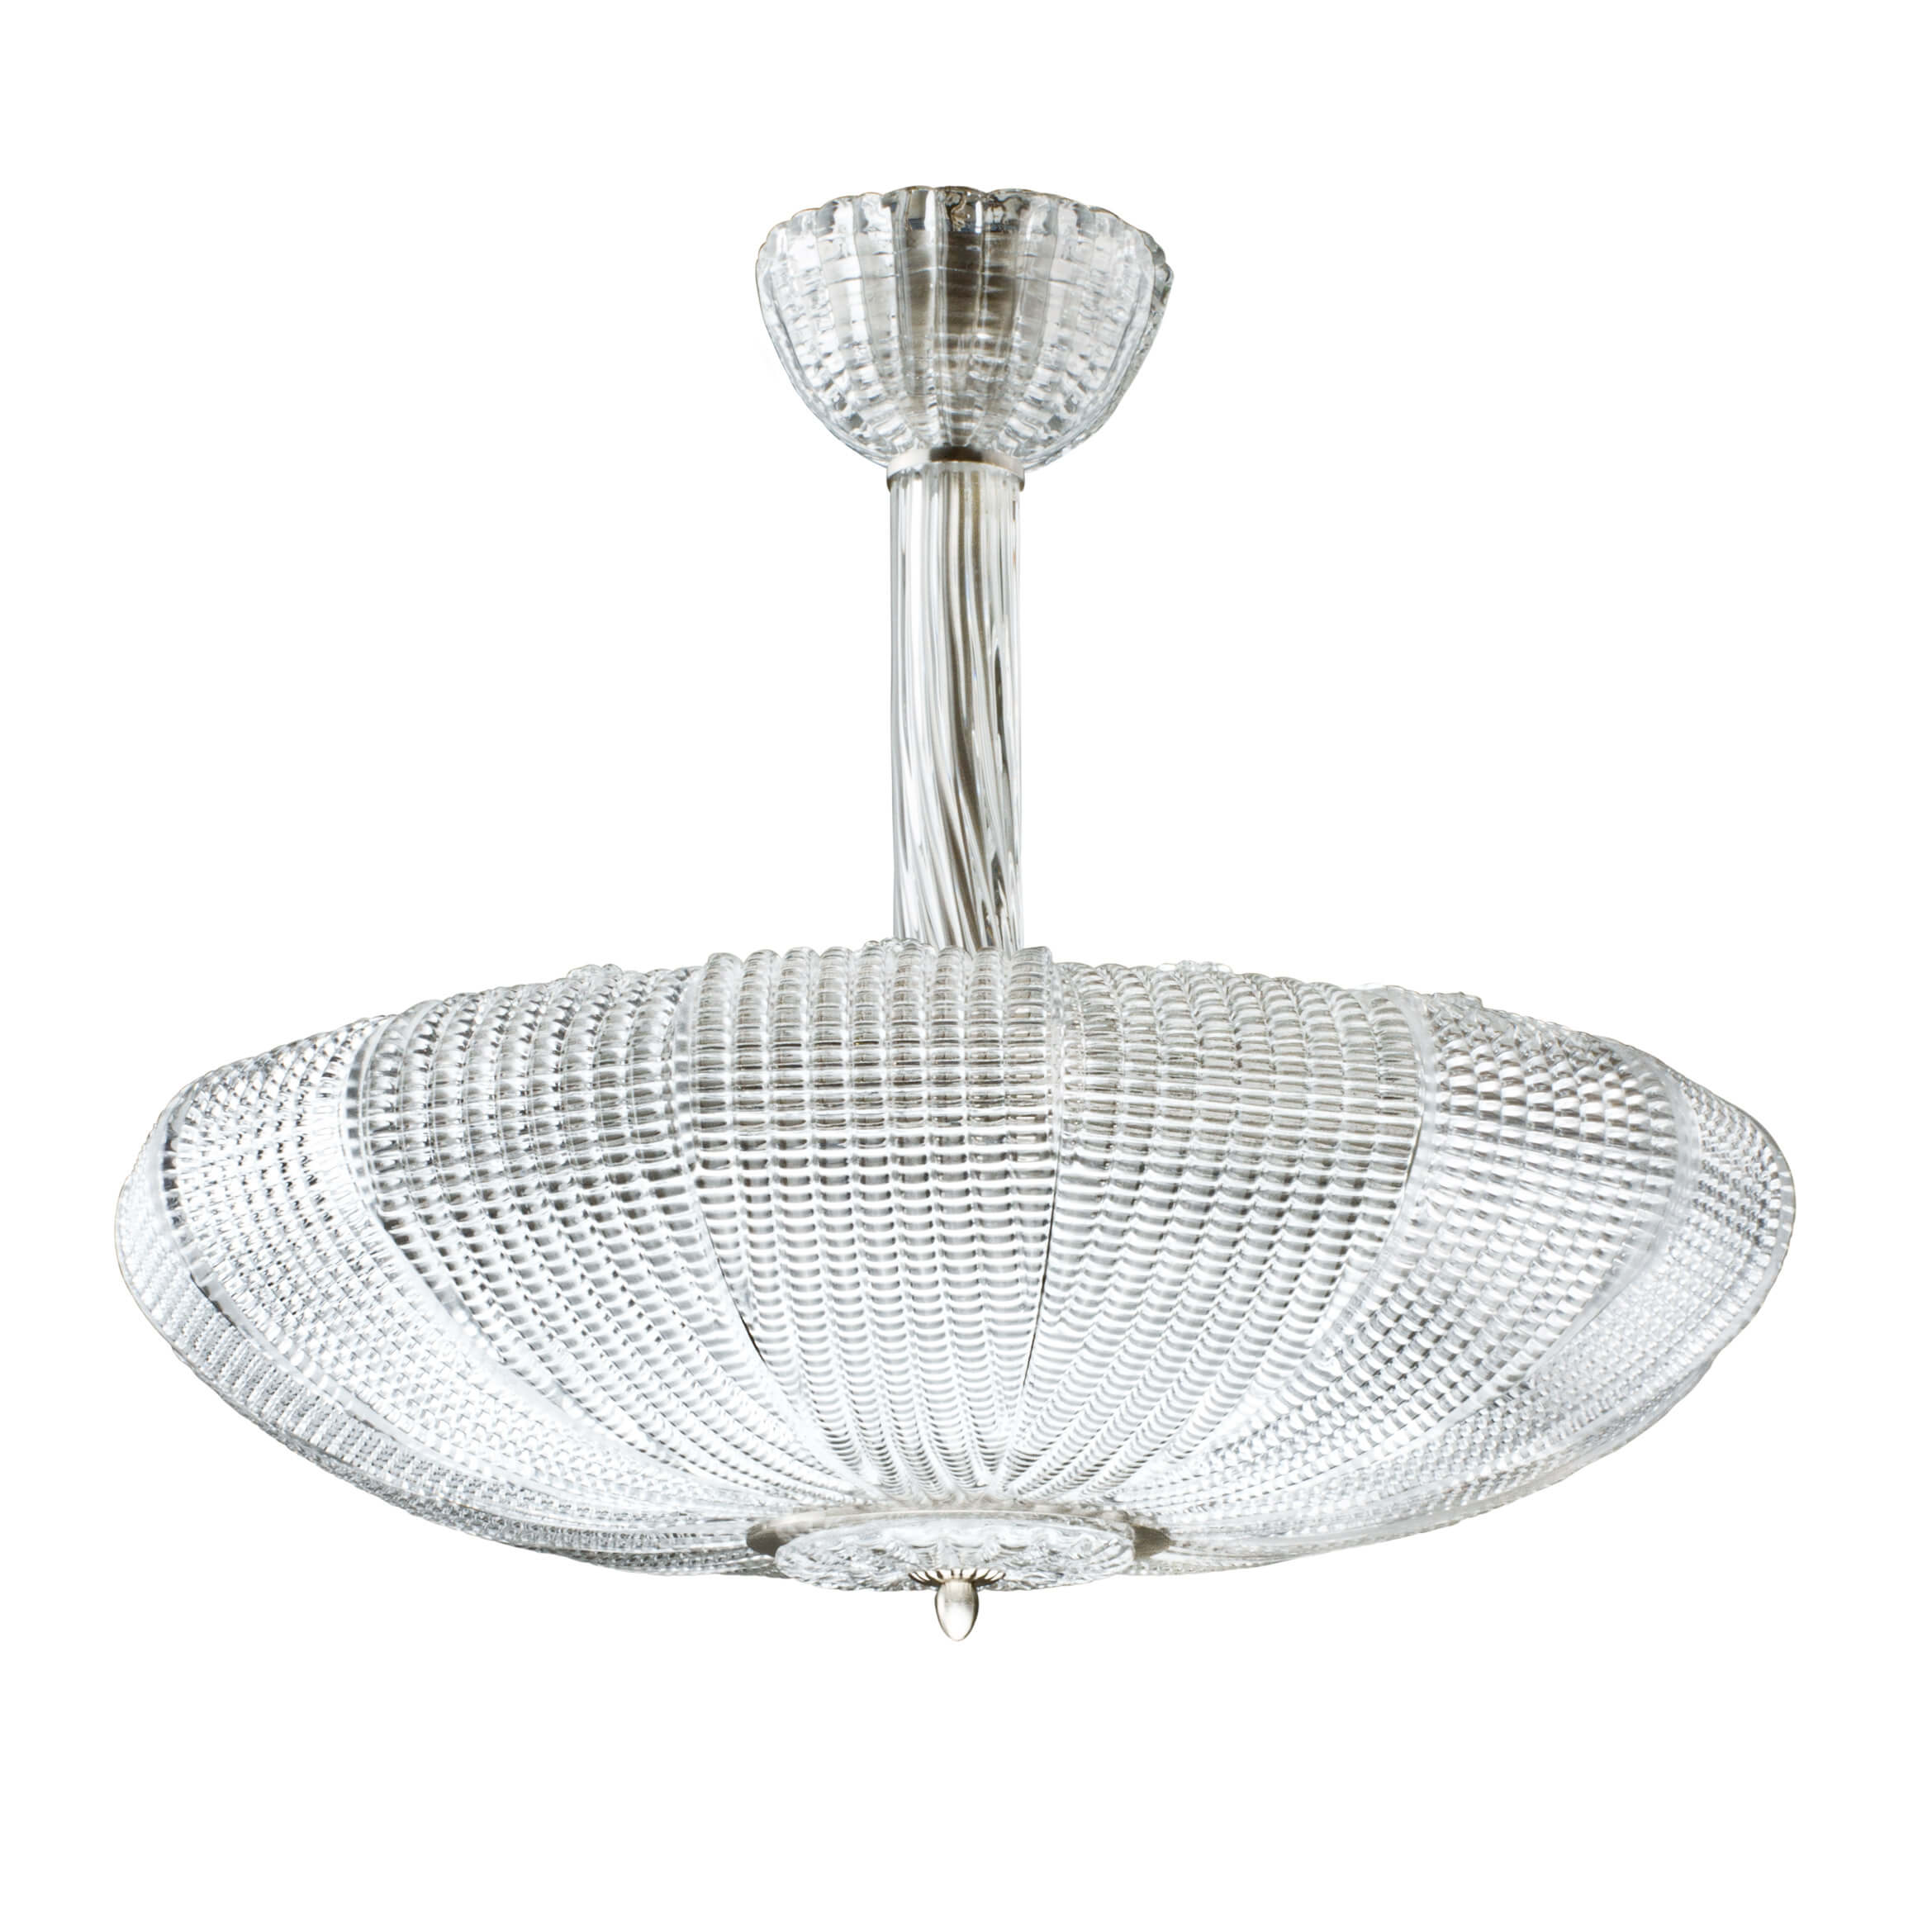 Sole villaverde london villaverde london sole ceiling light square2 aloadofball Image collections